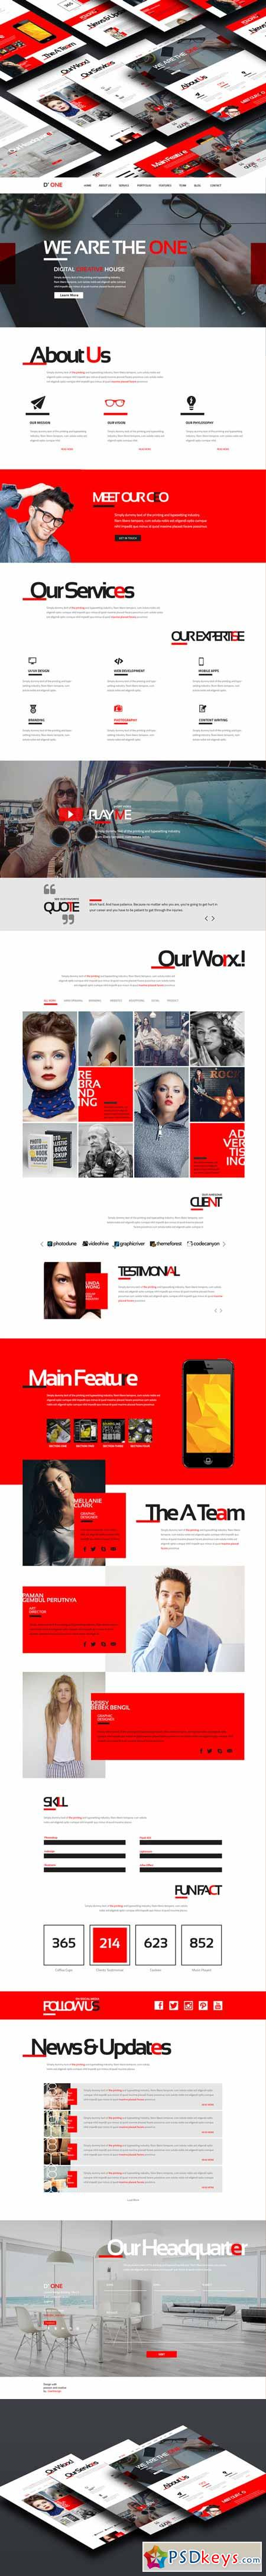 D One - Creative Agency Onepage PSD 213744